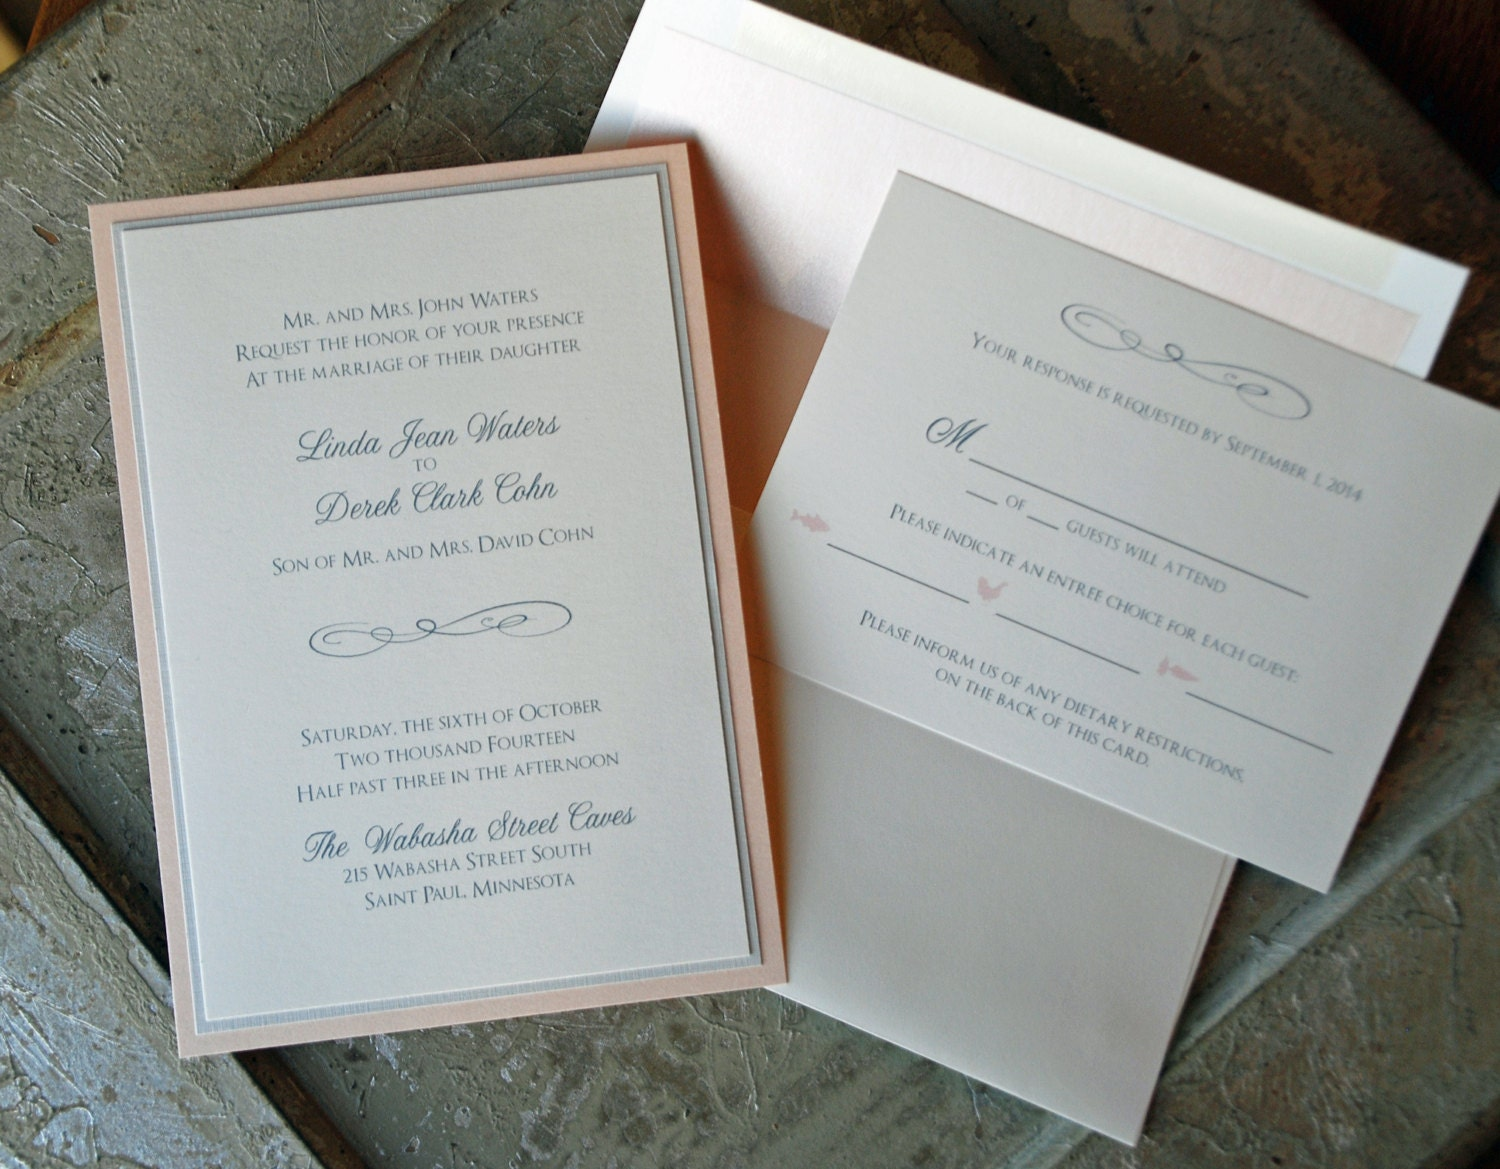 Flourish Wedding Invitations: Wedding Flourish Invitation Set Classic Wedding Invitation